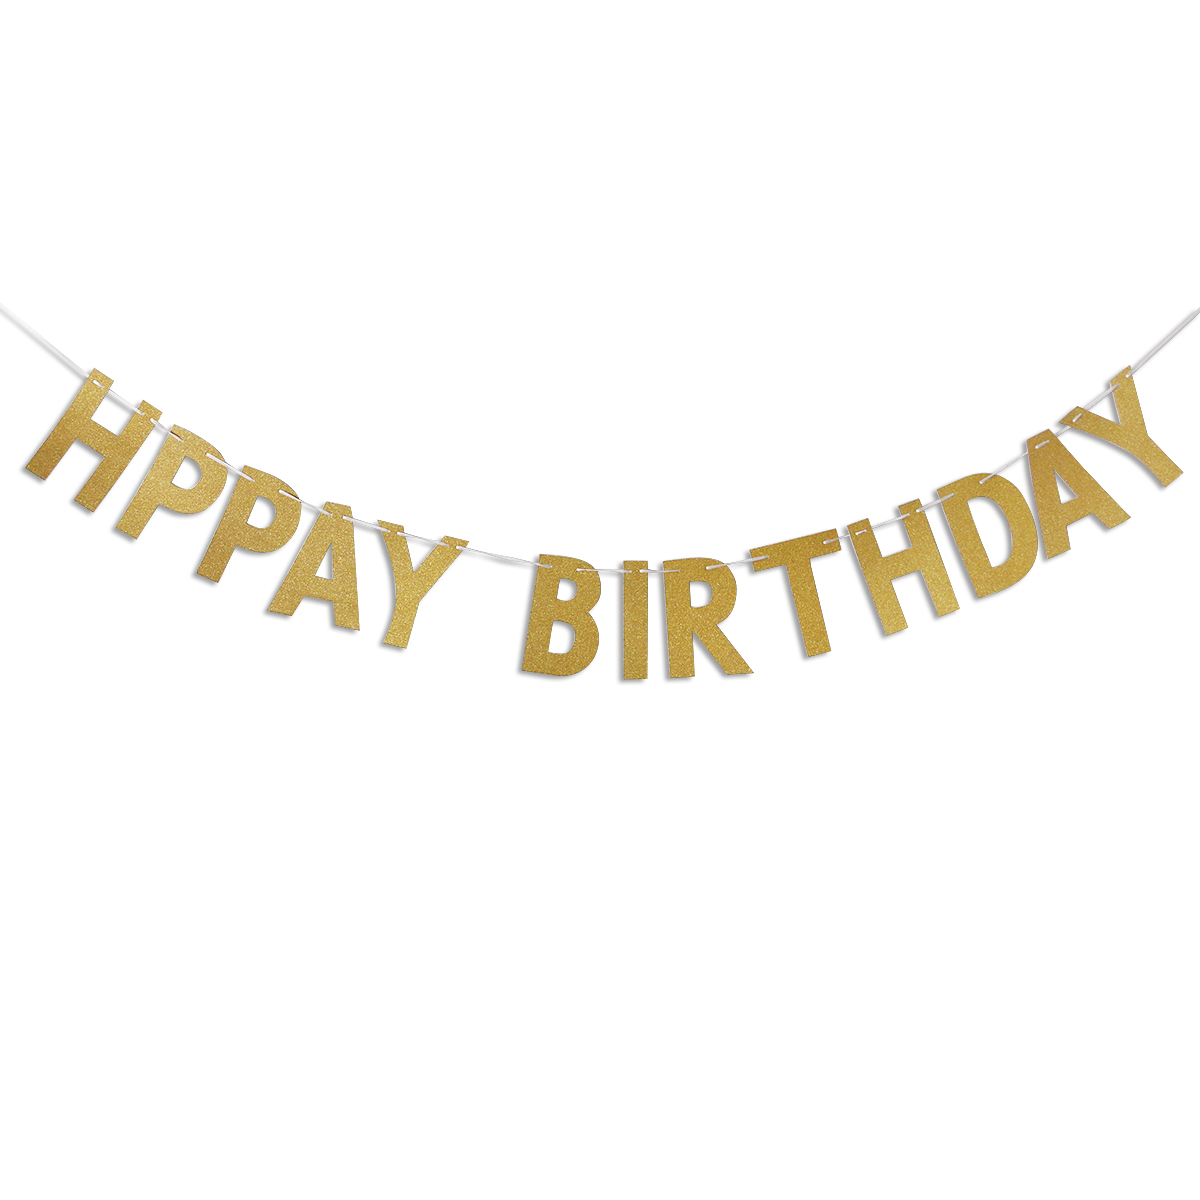 7ad2118d410fb US $1.81 46% OFF|Happy Birthday Banner Chic Glitter Gold Party Decorations  Versatile Beautiful Bunting Flag Garland-in Banners, Streamers & Confetti  ...